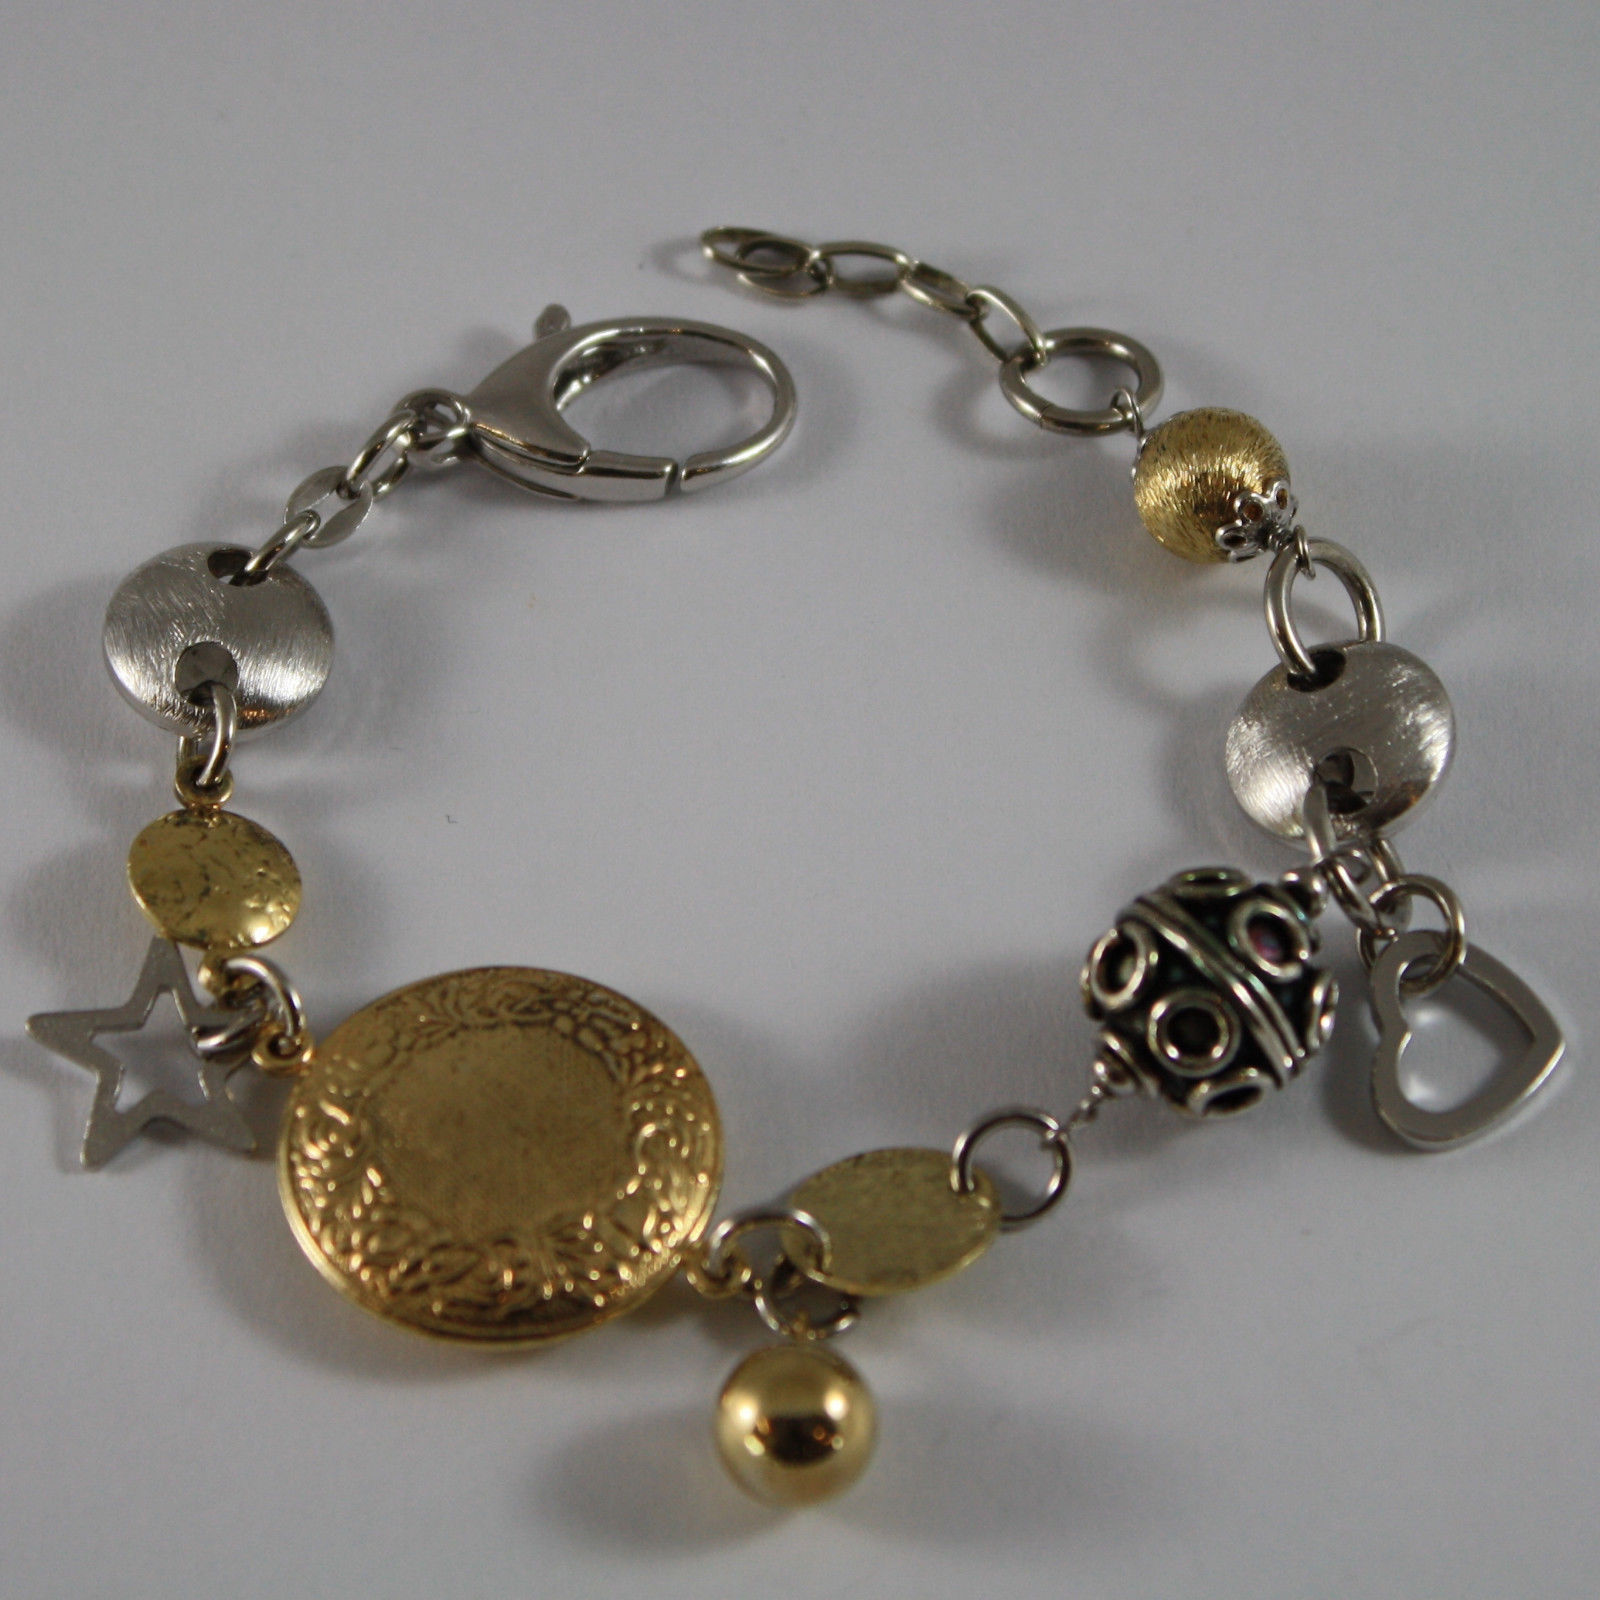 .925 RHODIUM SILVER AND YELLOW GOLD PLATED BRACELET WITH SPHERES AND CHARMS